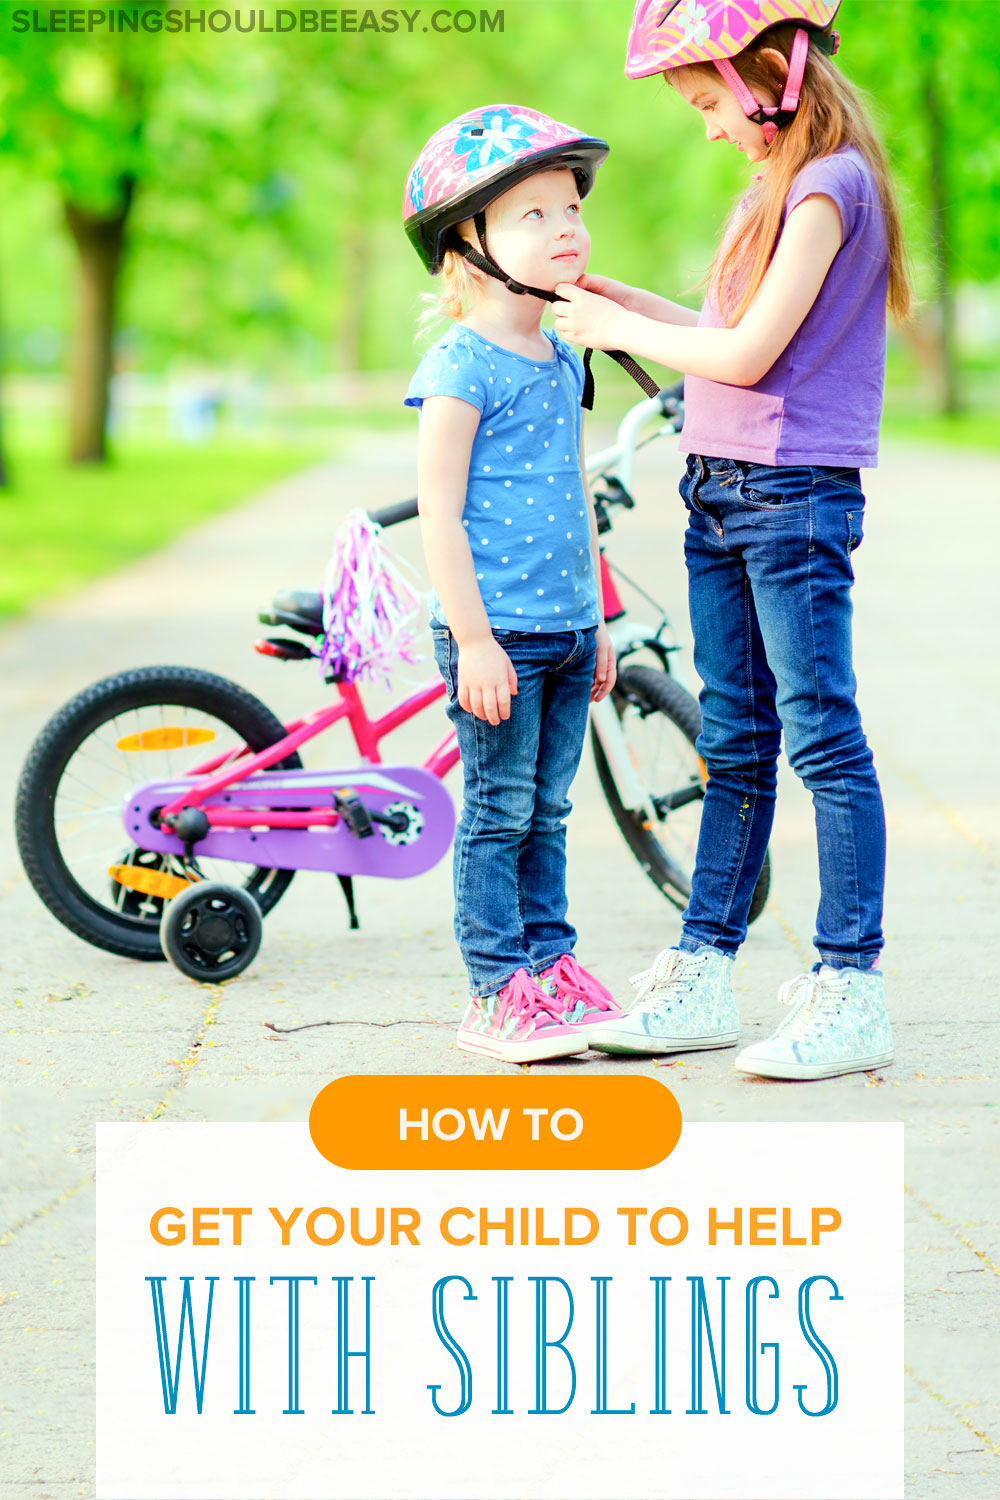 What do you do when your older child refuses to help with younger siblings? Follow these tips to encourage your child to help willingly and on her own.